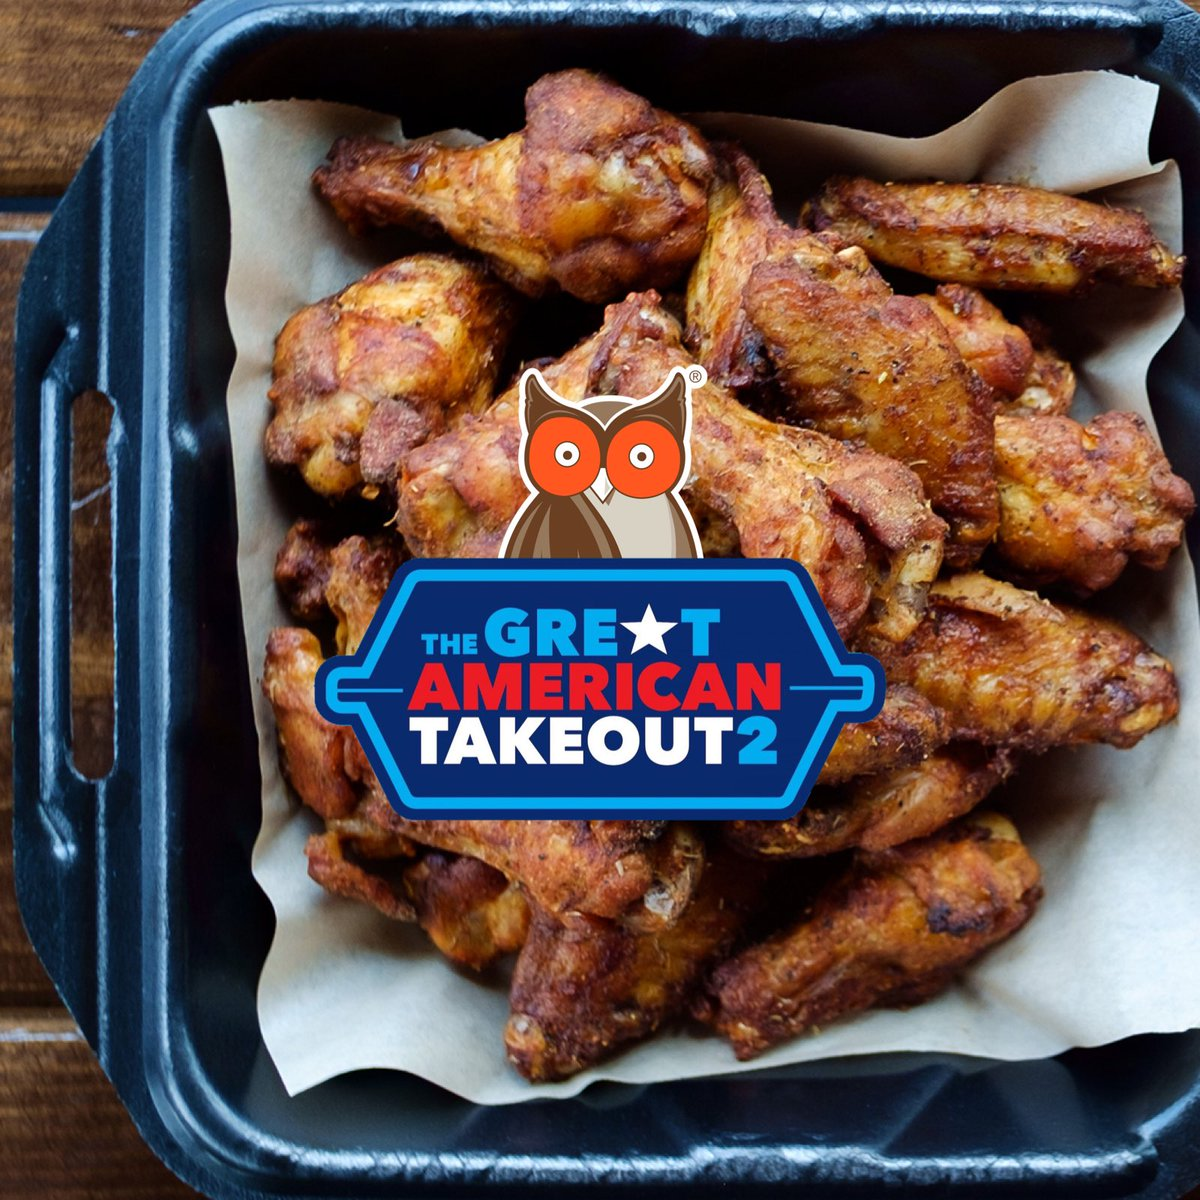 The #GreatAmericanTakeout is back for seconds!   Join in and support your local restaurants today 👍  Use code TAKEOUT at  or on the @Hooters App for $10 off $30+ pickup and delivery orders!  #di9 in! 🍗